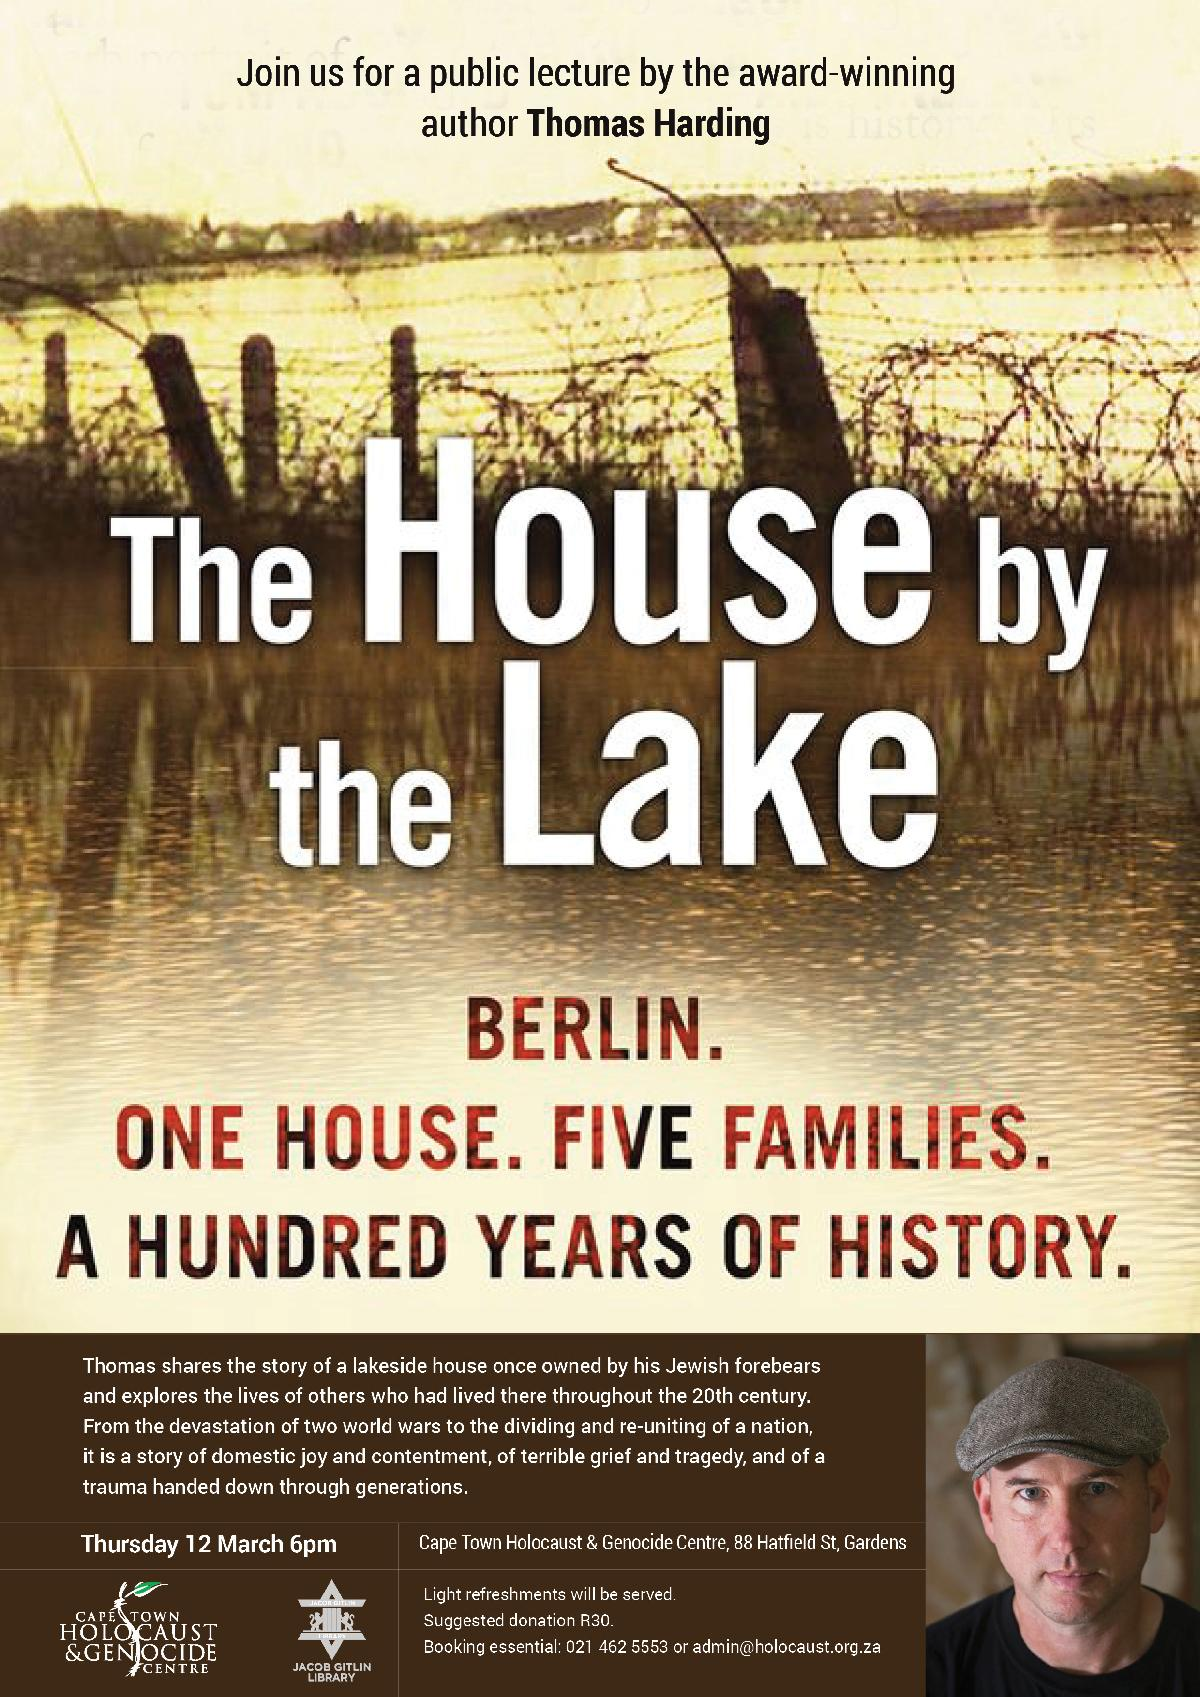 A-House-by-the-Lake-Thomas-Harding-CTHGC